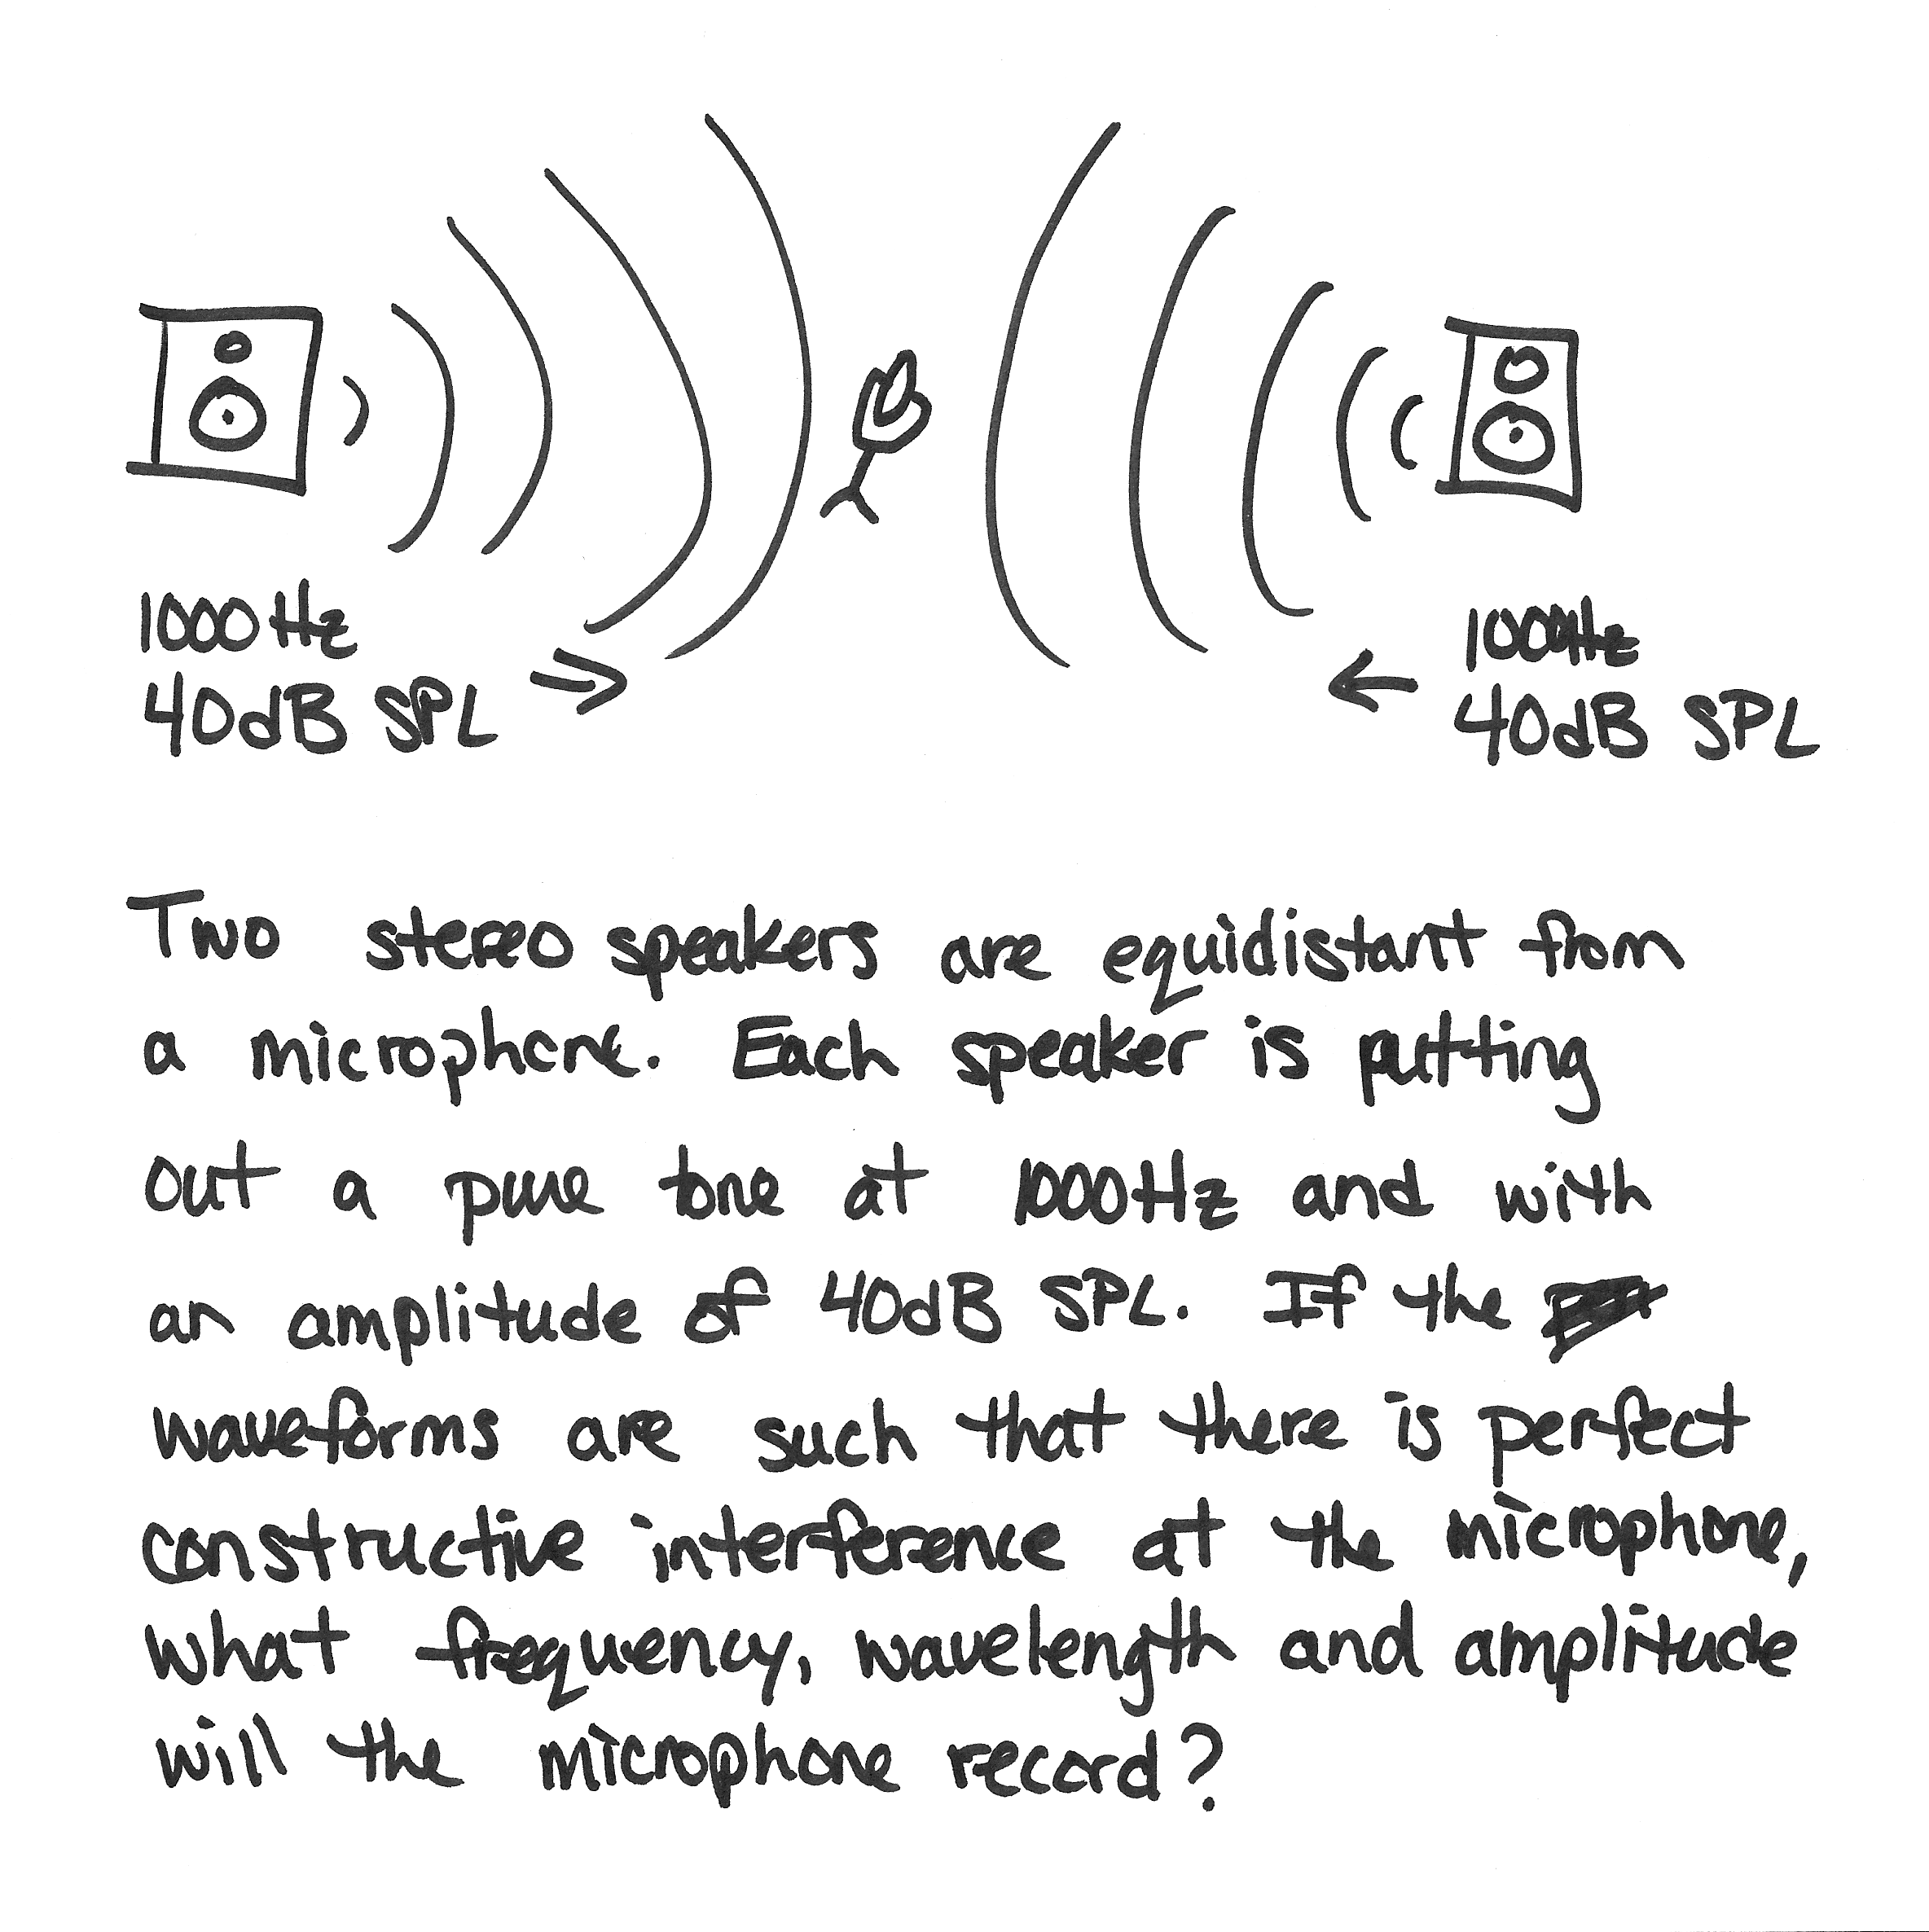 File:Hearing science brainteaser - constructive interference